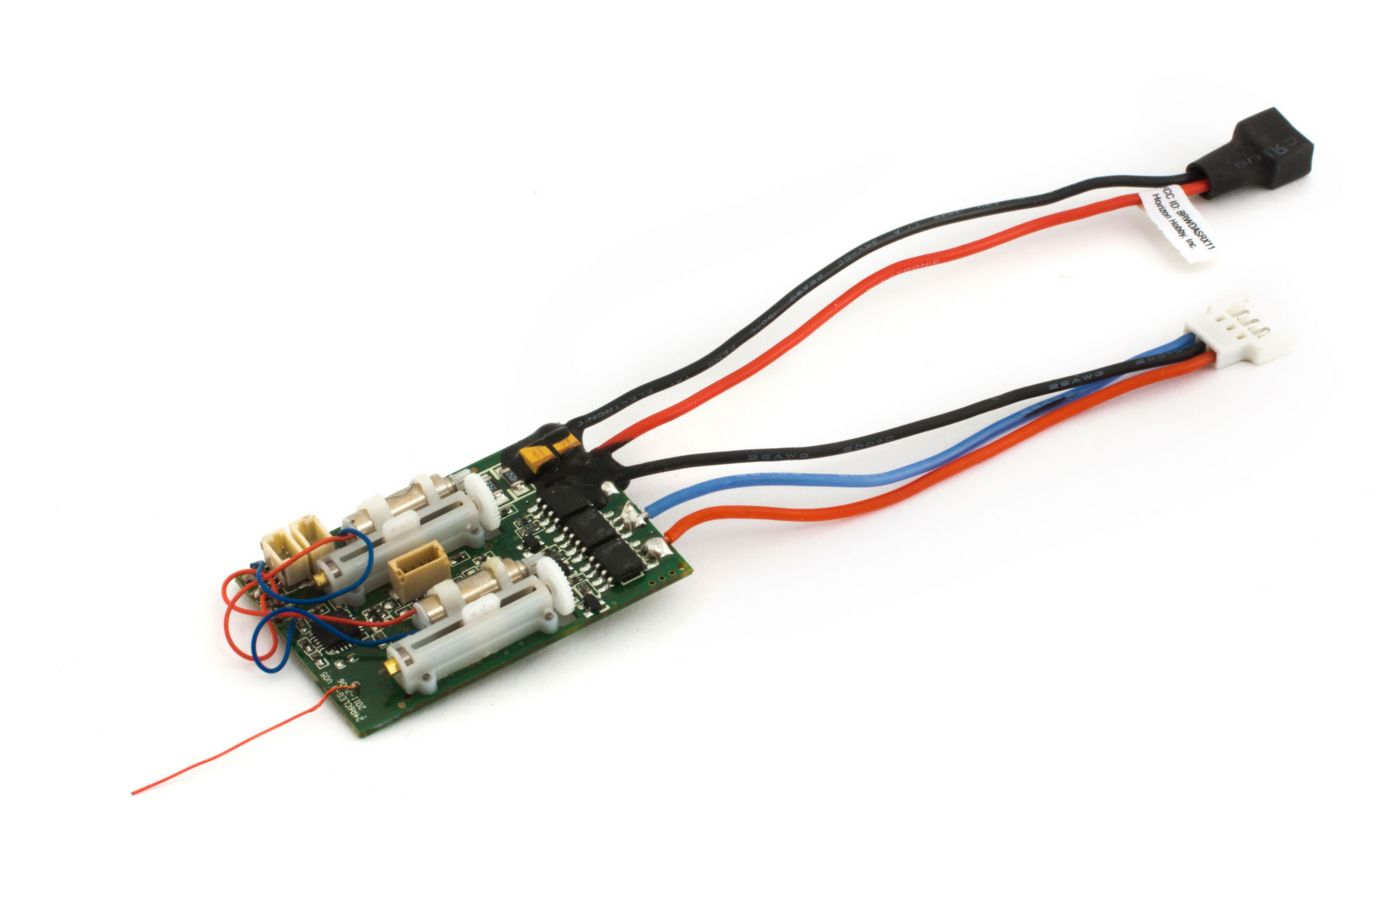 hight resolution of image for dsm2 6 ch ultra micro as3x receiver bl esc from horizonhobby